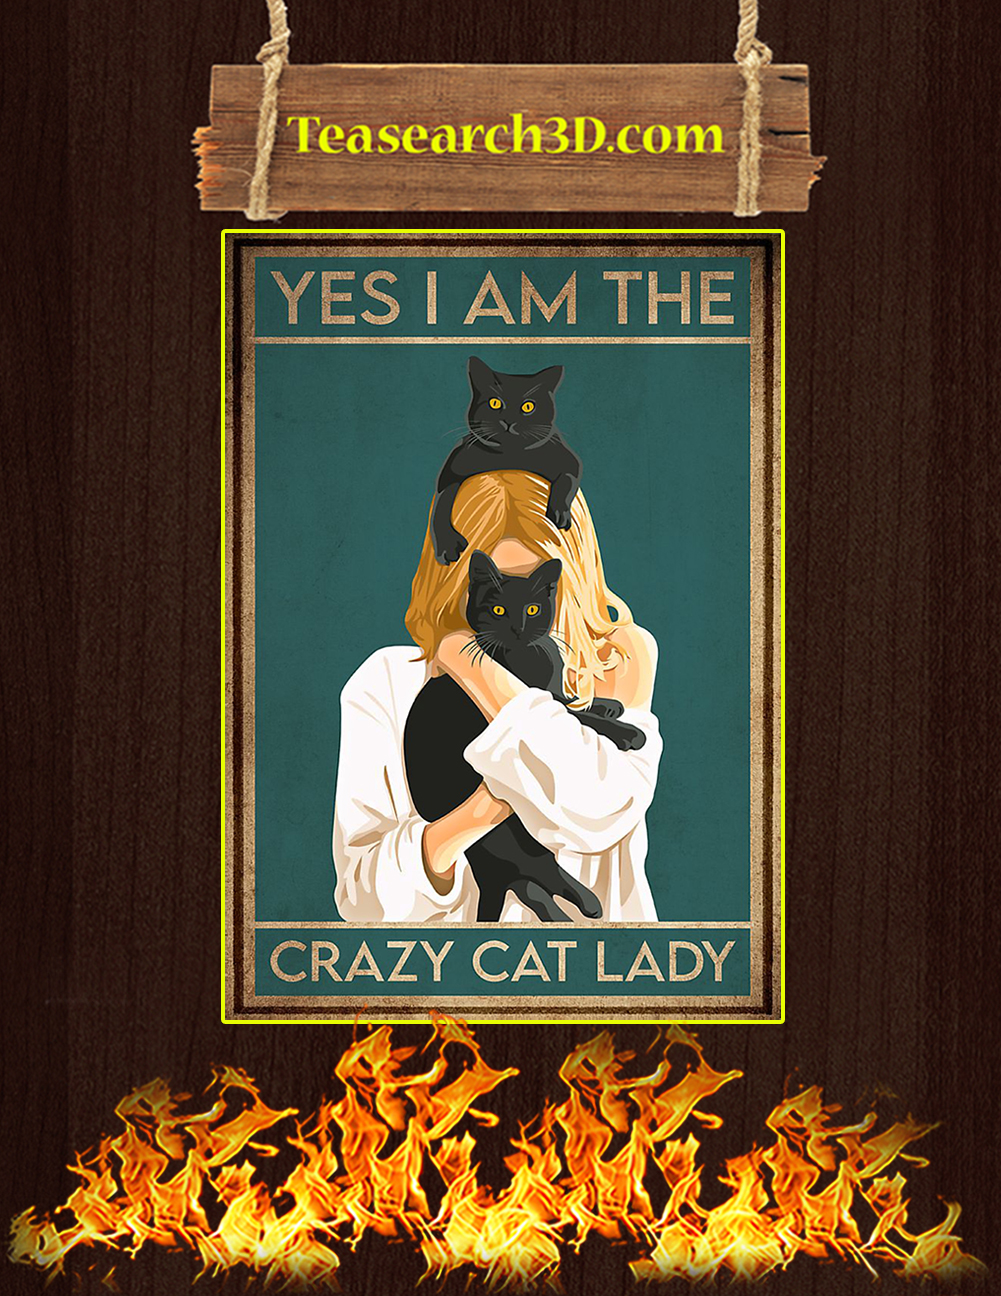 Yes I am the crazy cat lady poster